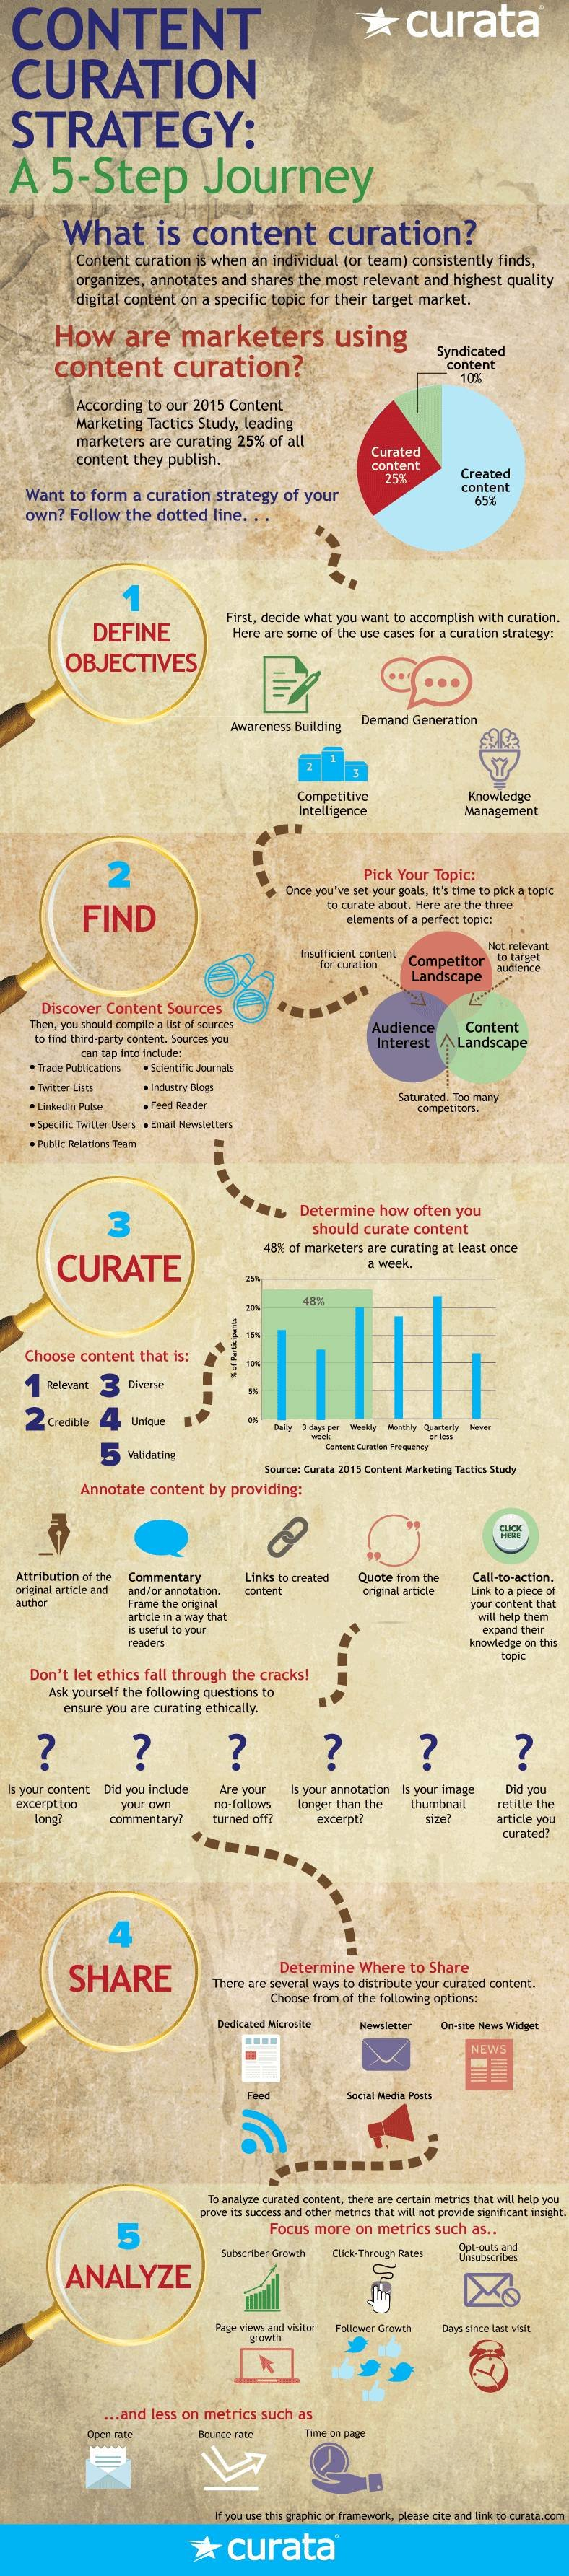 Content Curation Strategy: A 5-Step Journey #Infographic